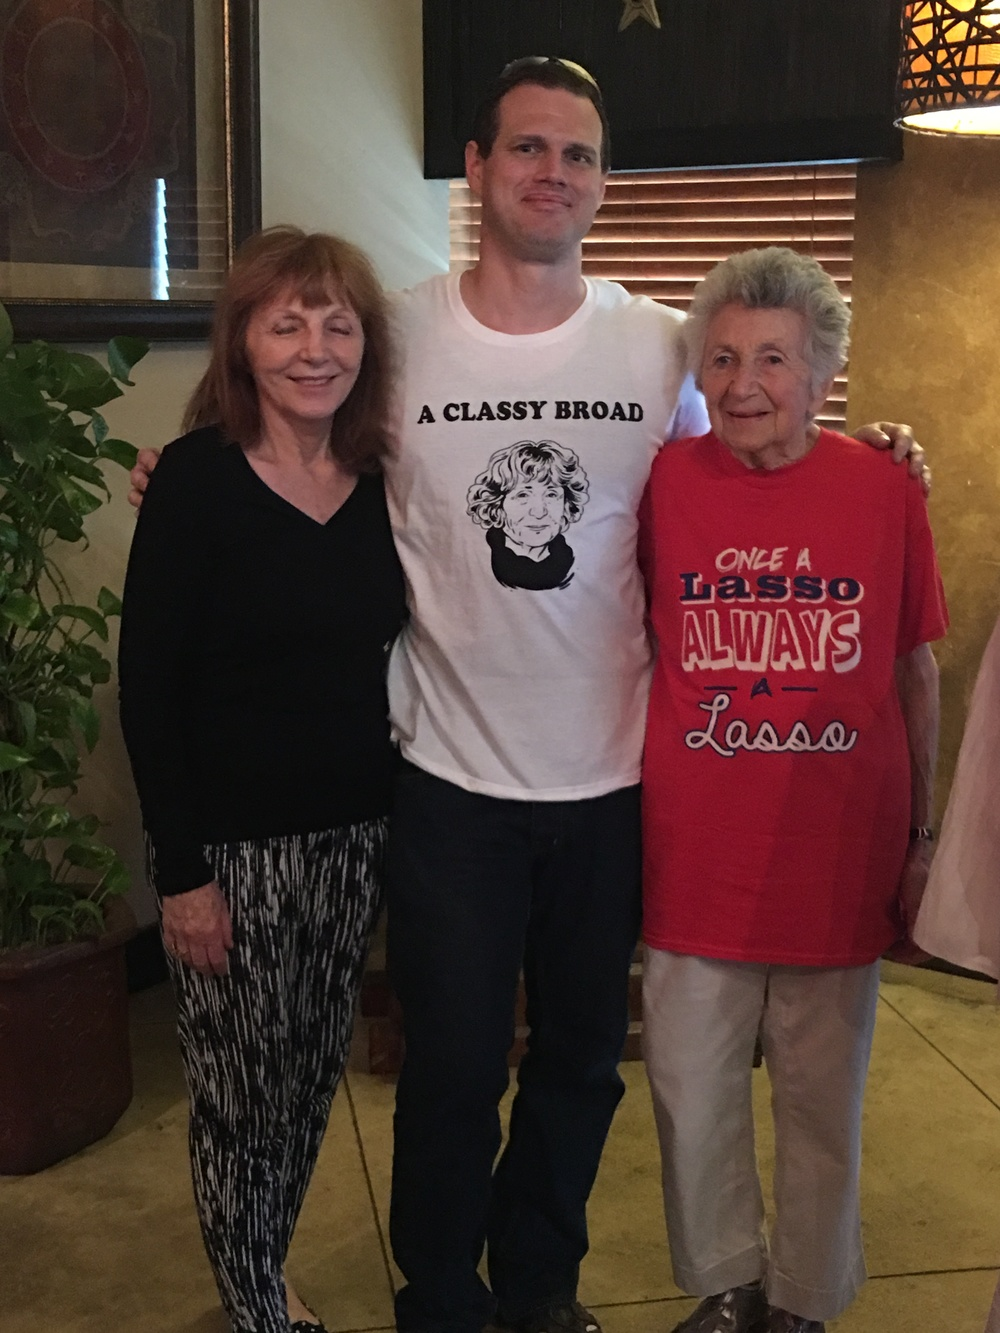 Anne and Marcia pictured with Wes Hughes (in our official ACB t-shirt)